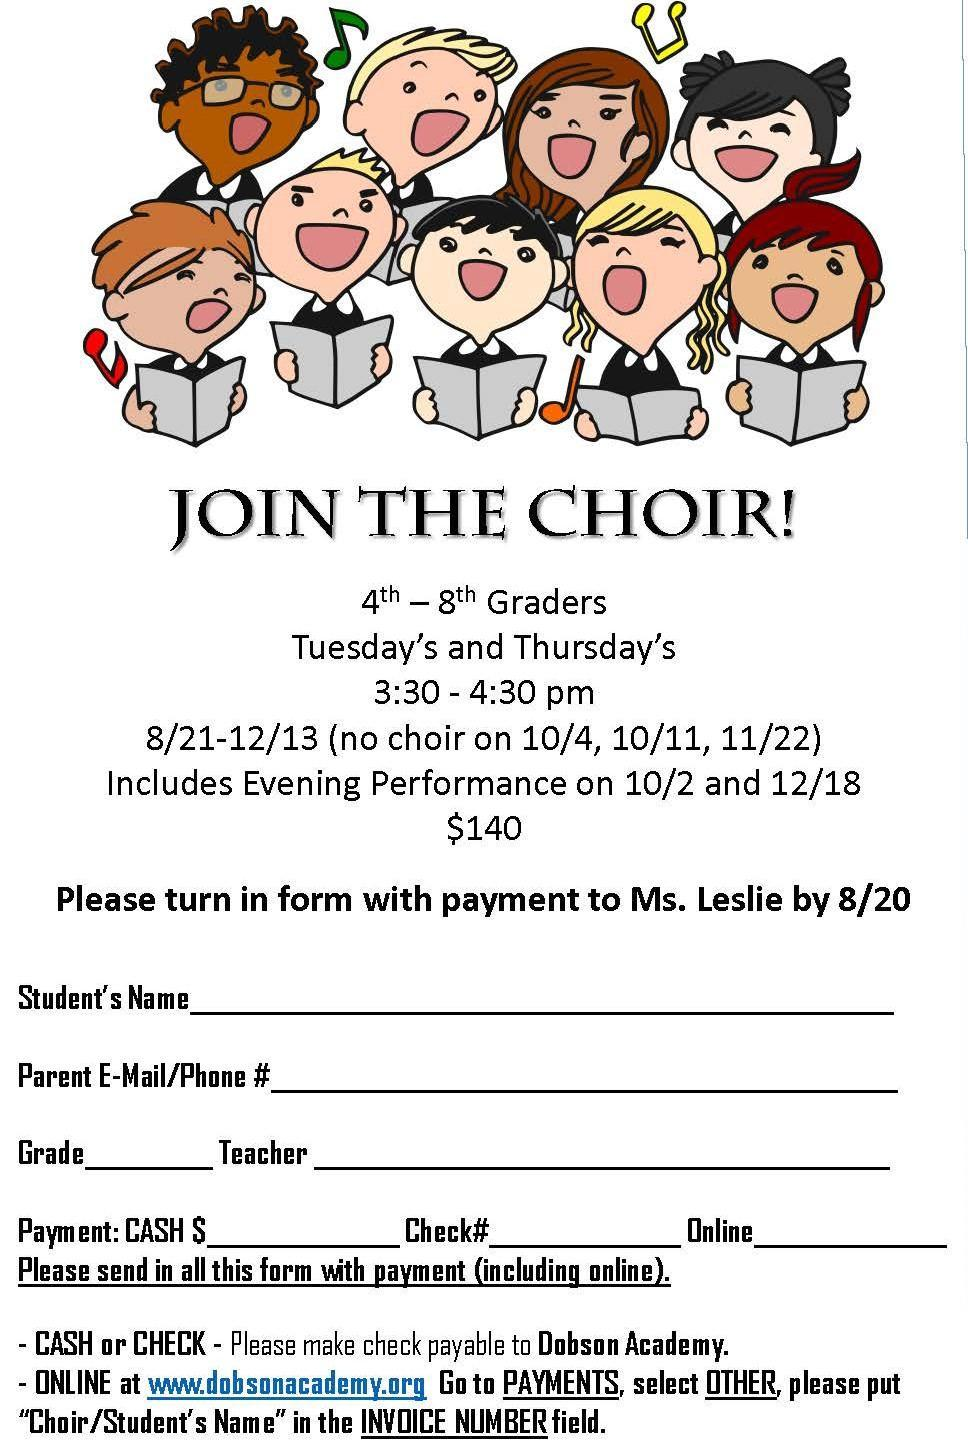 Join the choir